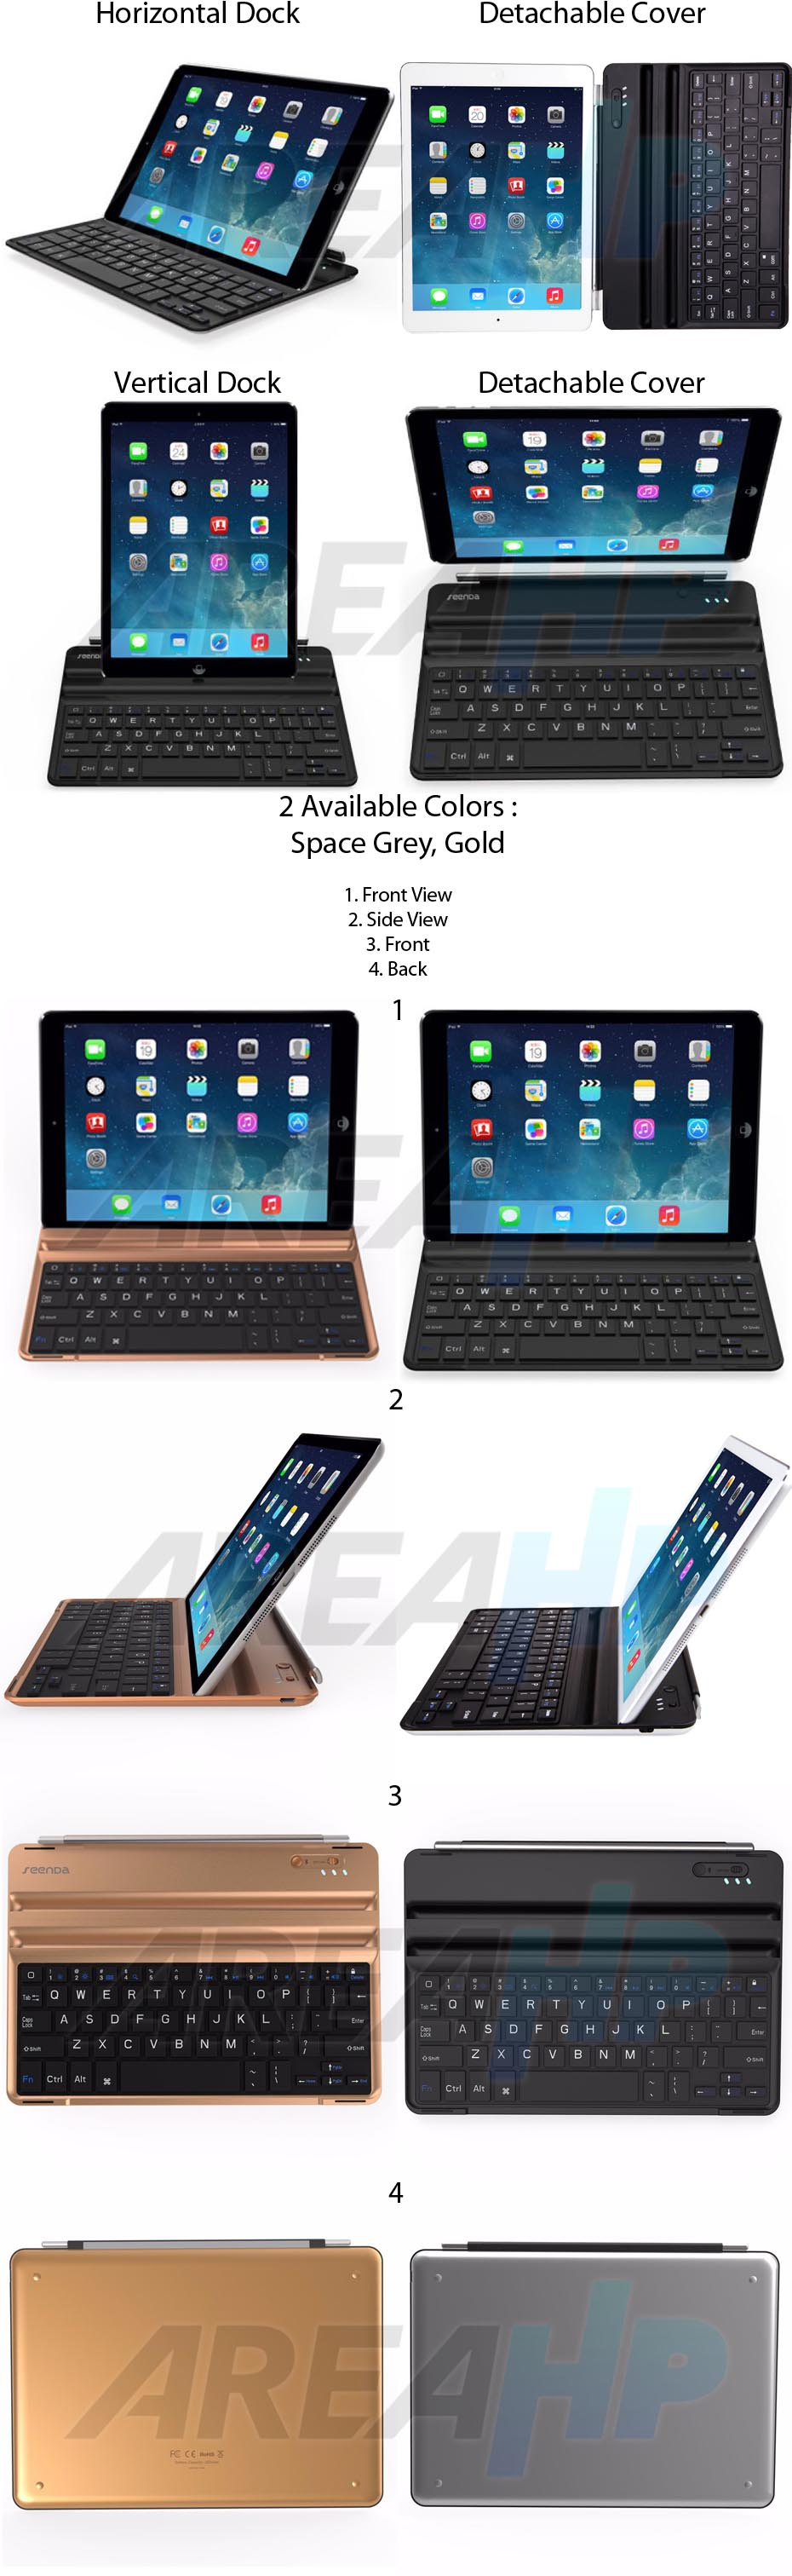 Seenda Ultra Slim Keyboard Cover for iPad Air, Air 2, Pro 9.7 IBK-07 Overview